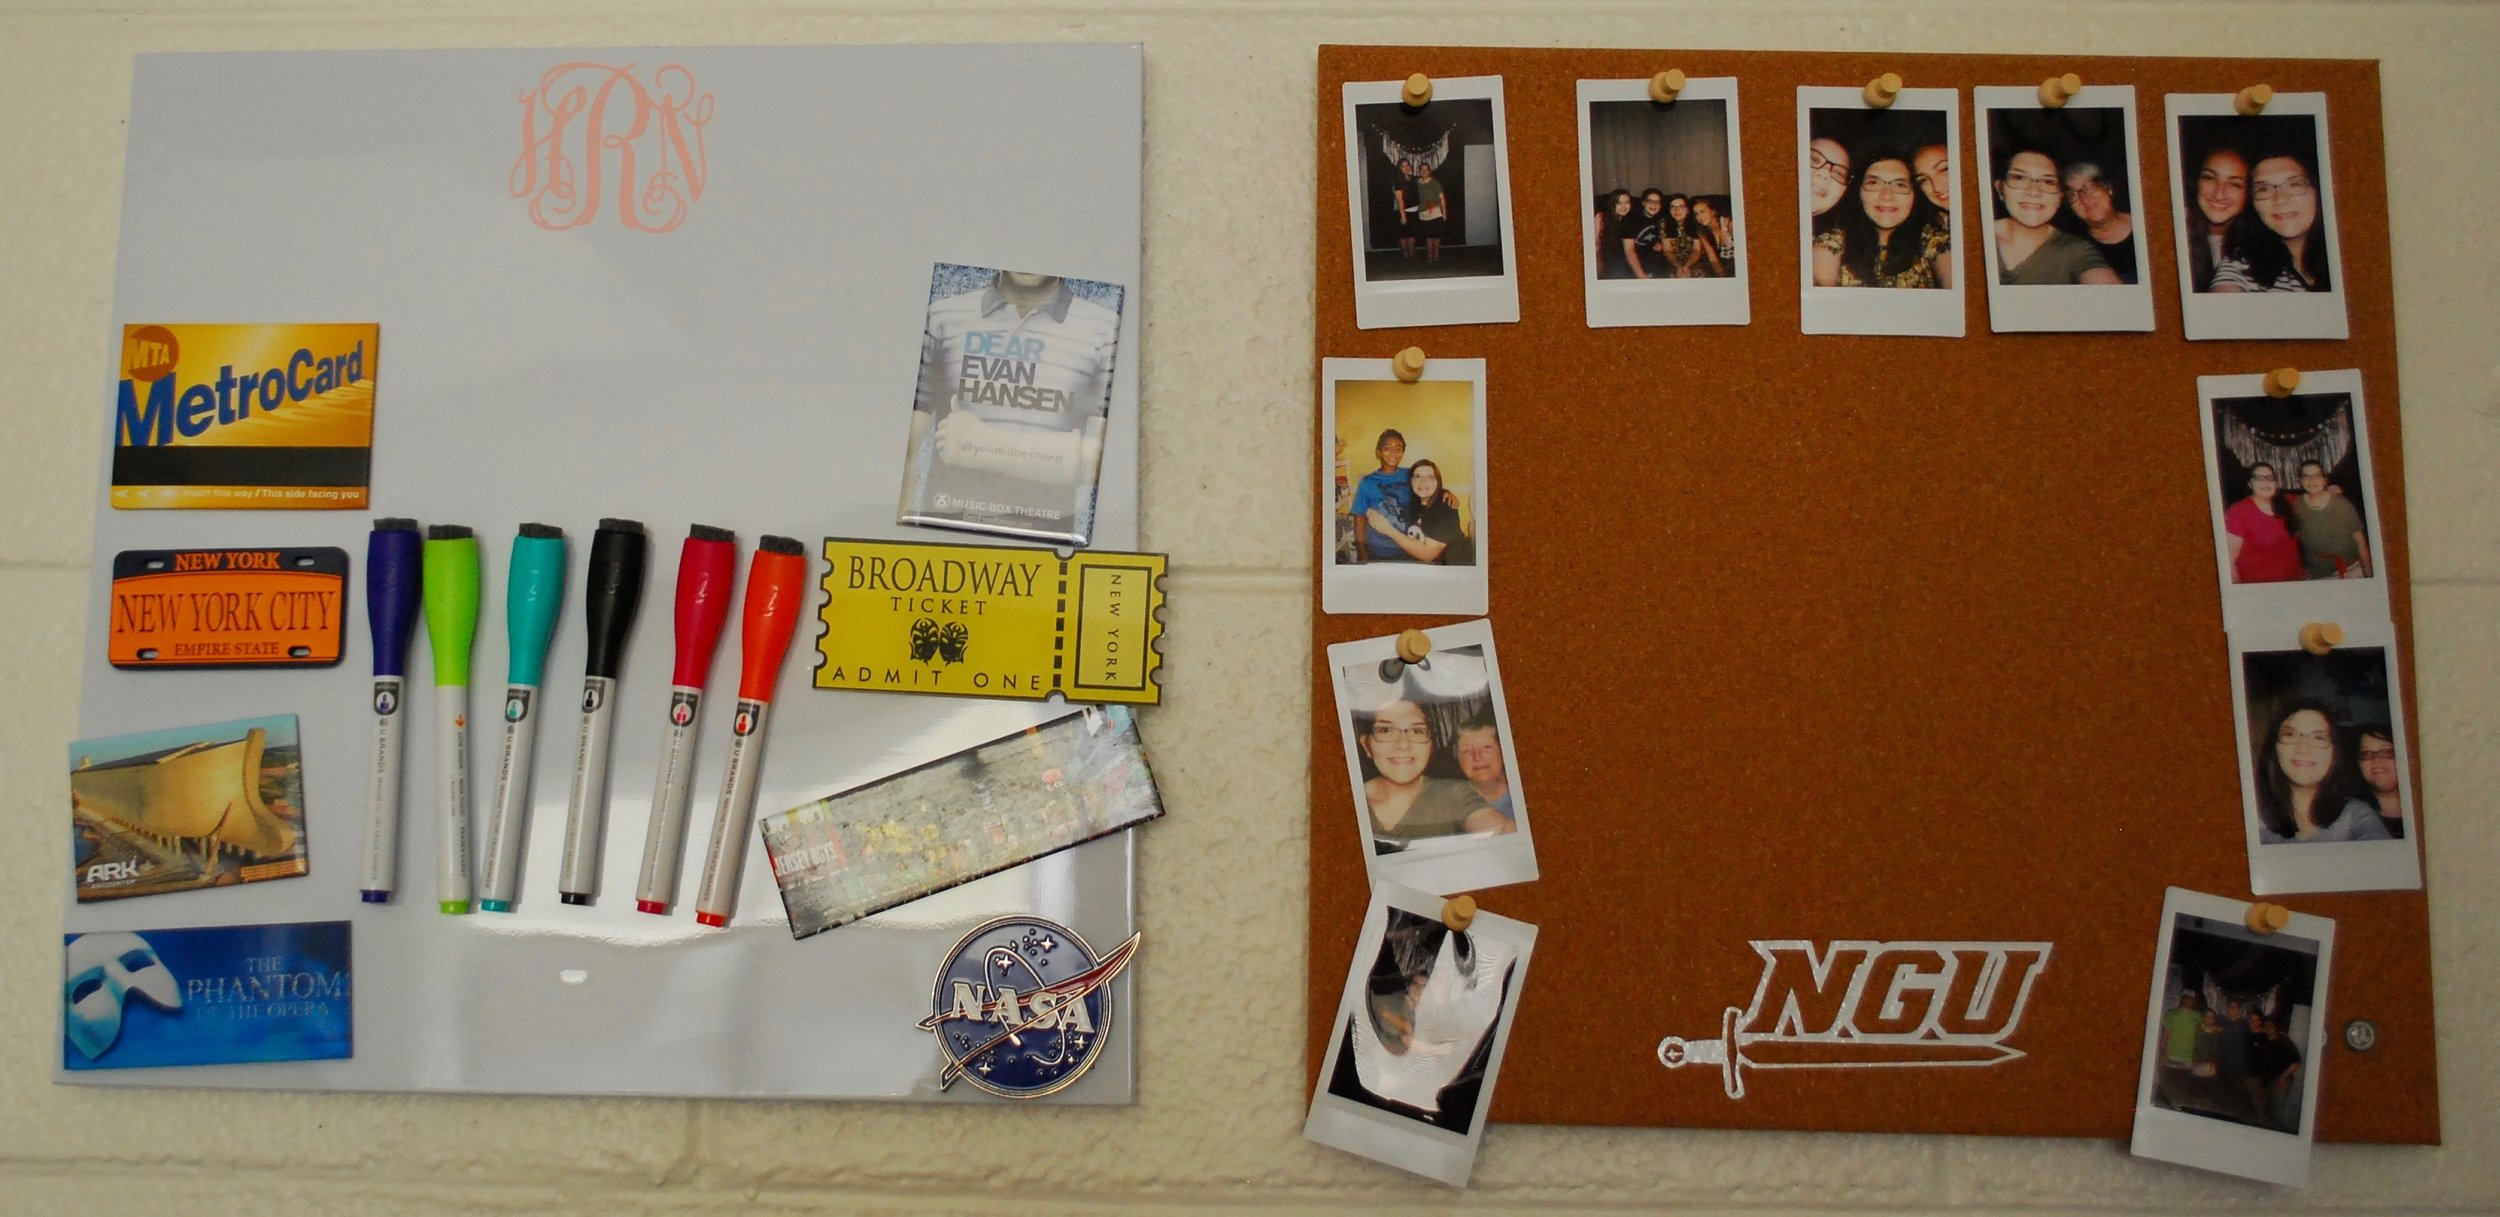 Roddy's collection of New York magnets (left) and one of her many photographic displays of family and friends (right).